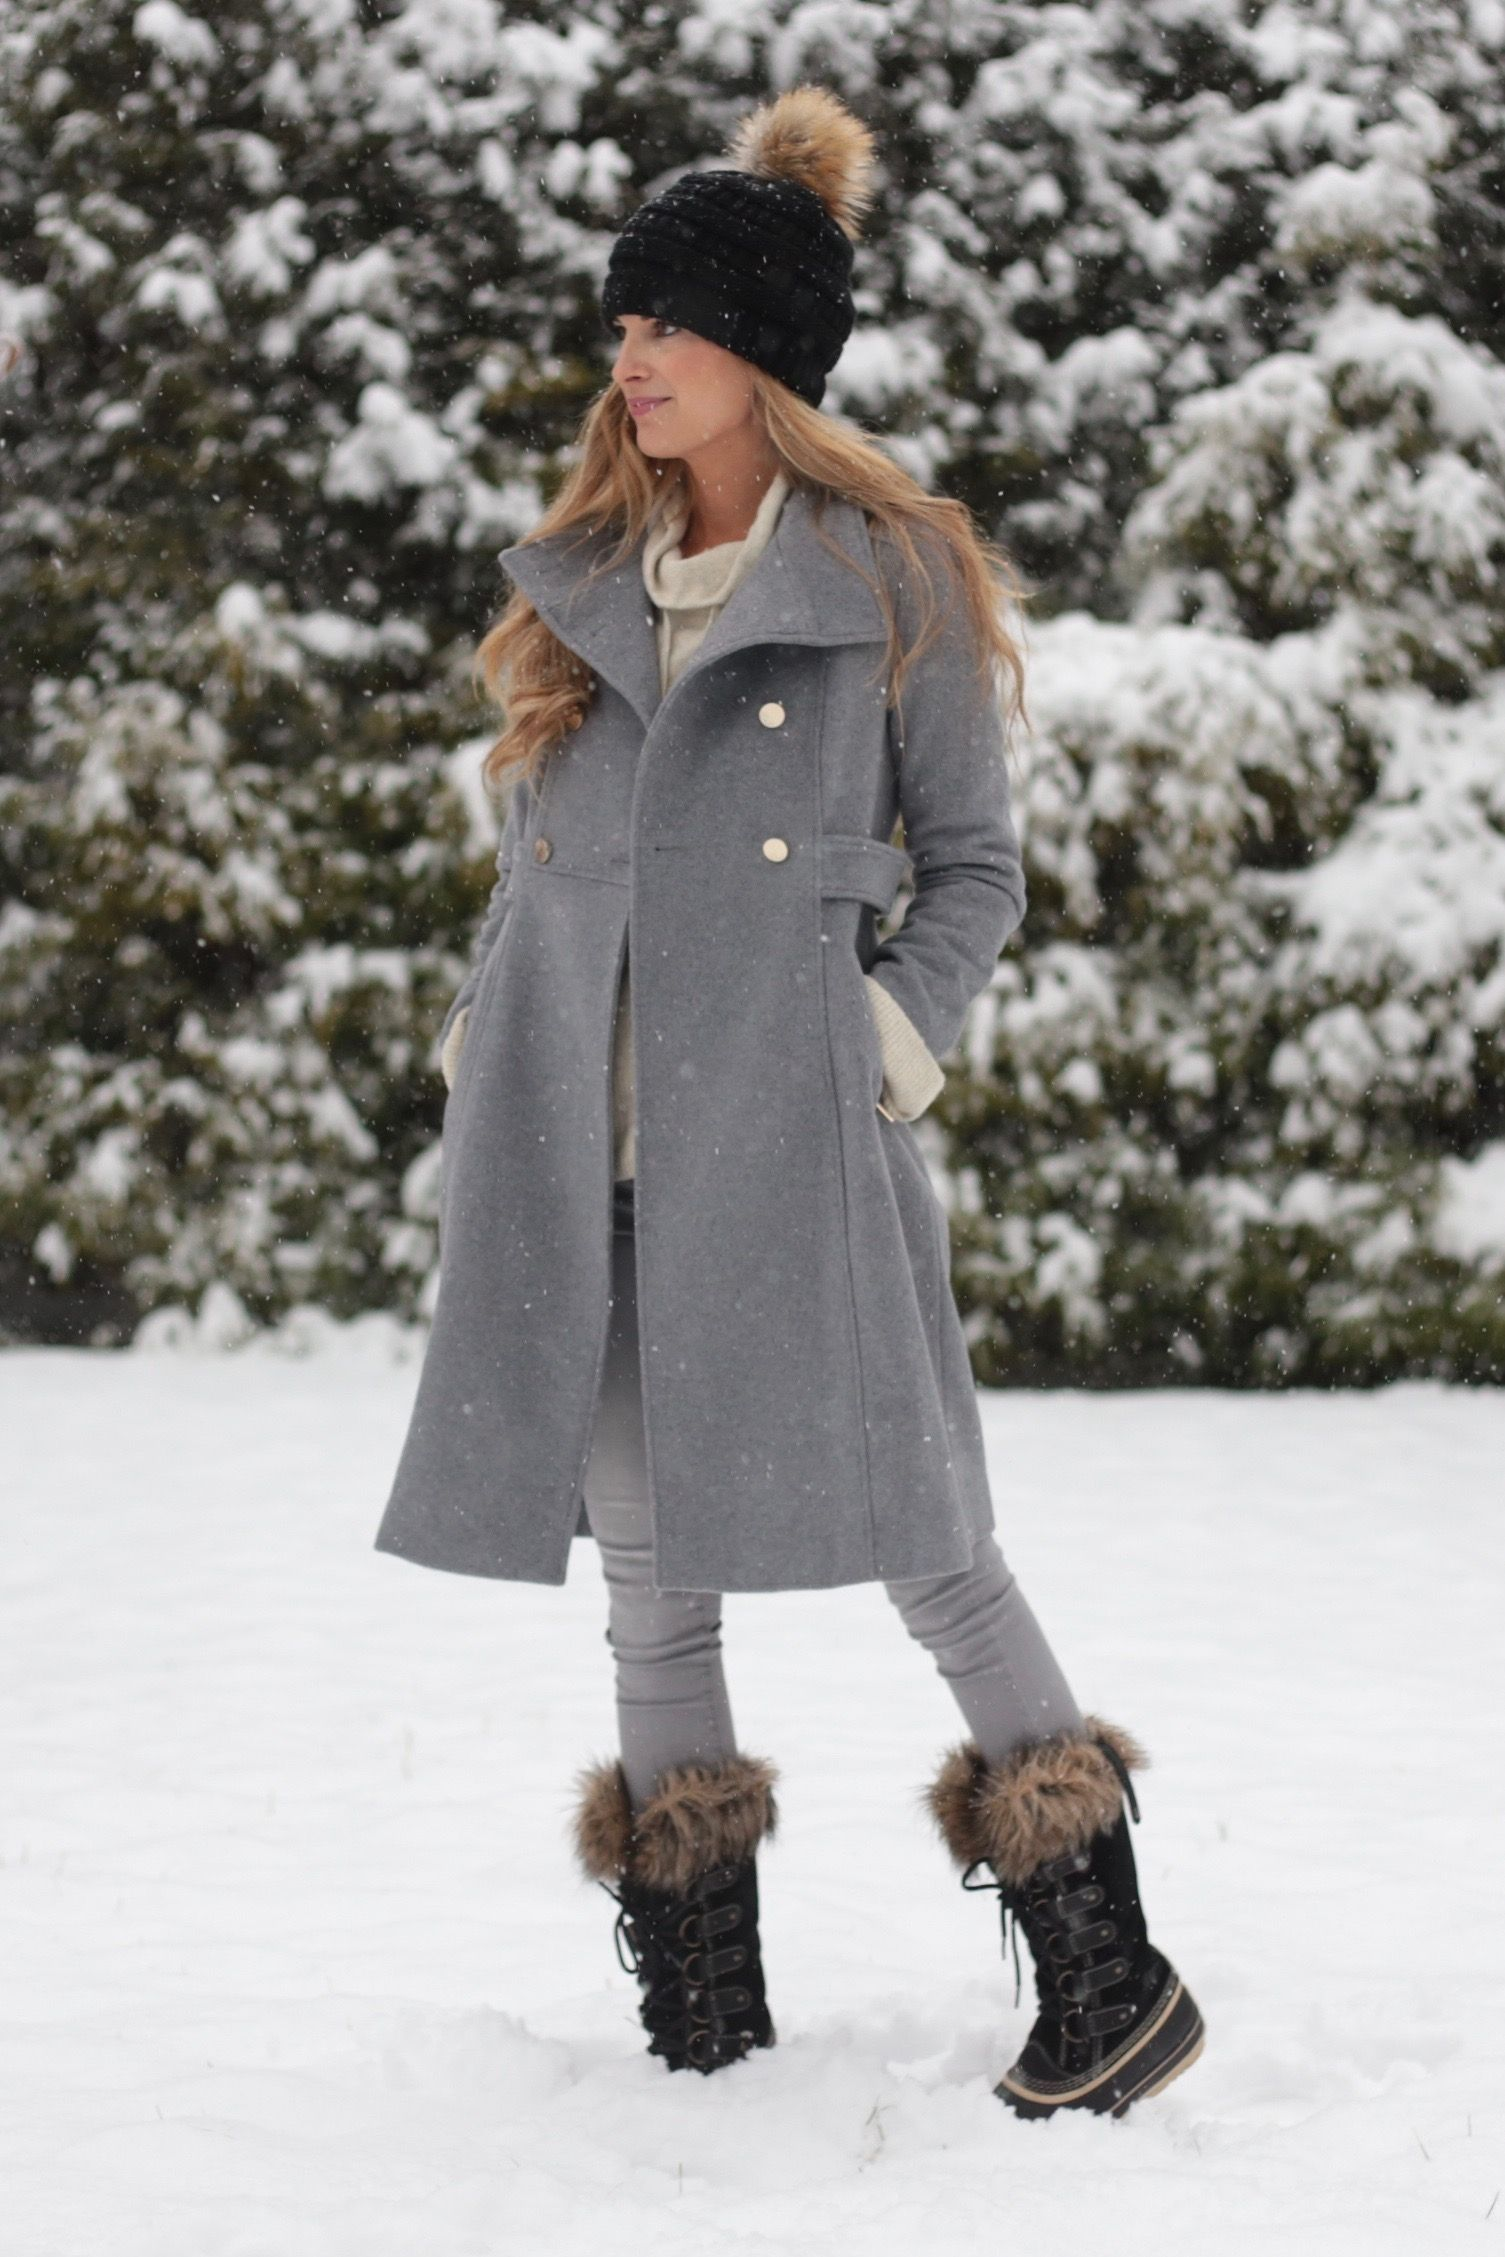 13+ Winter Fashion Outfits Casual Cozy Minimal Chic